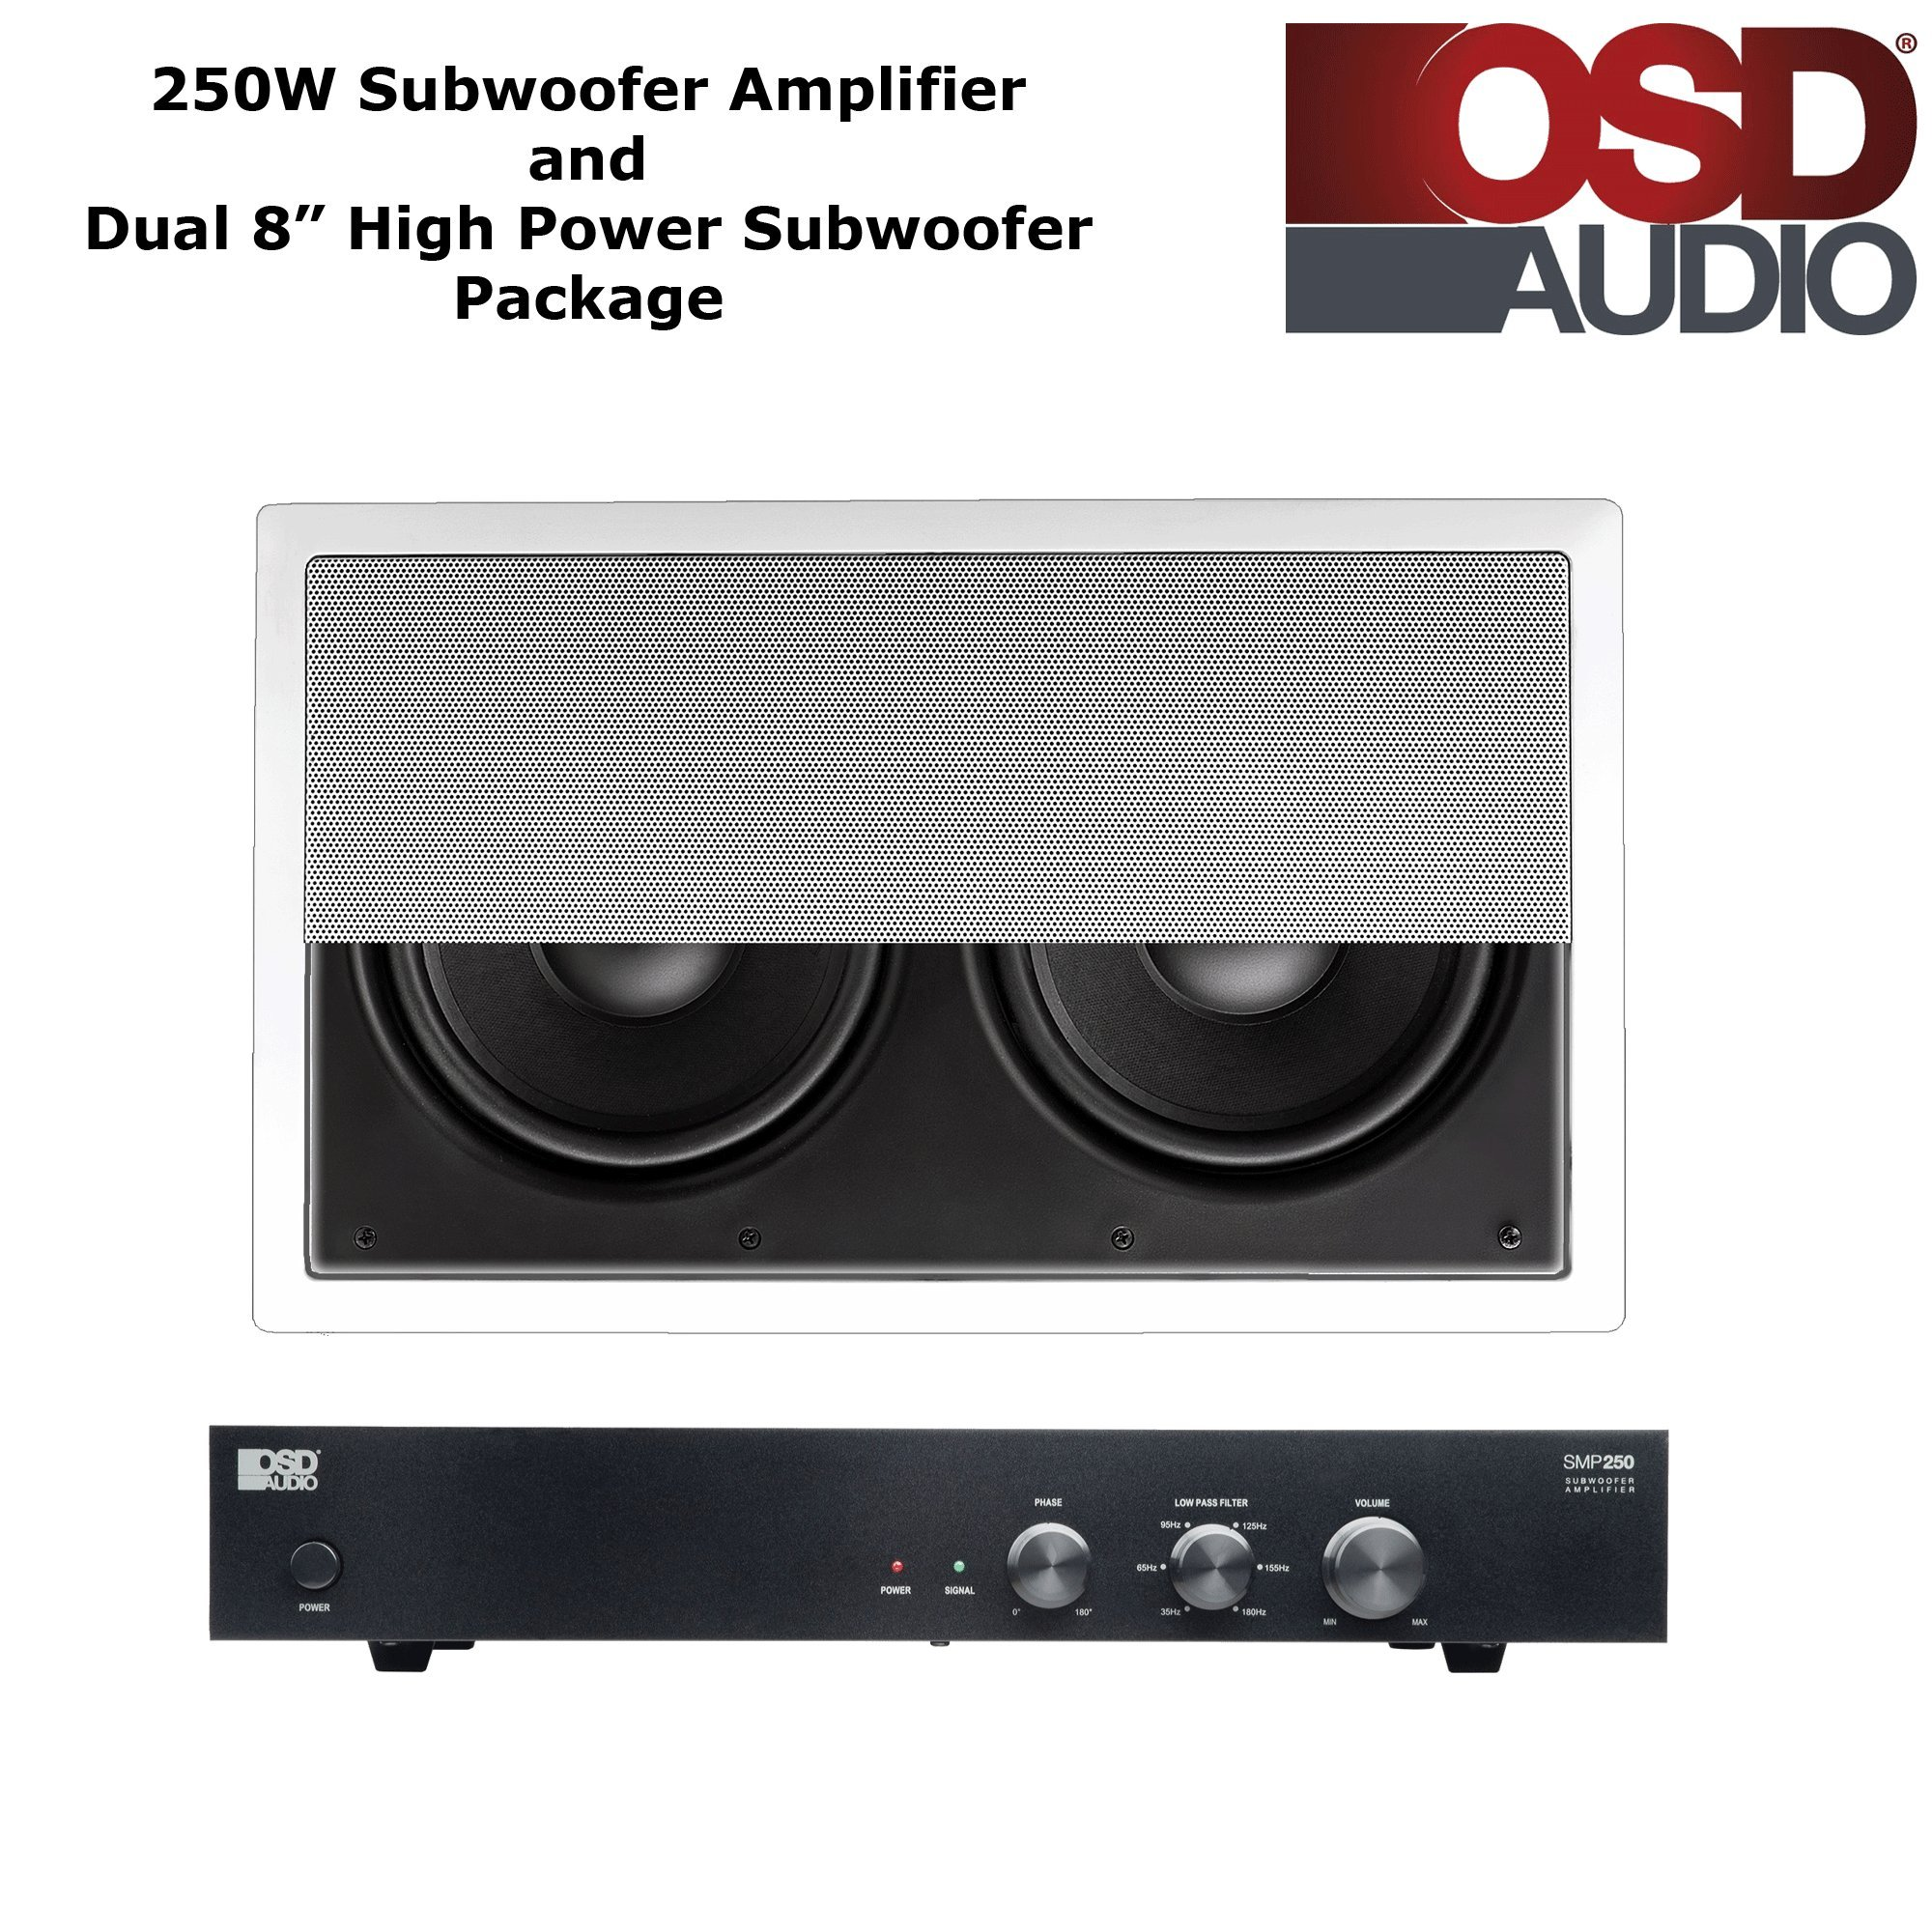 OSD Audio 250W High Current A/B Subwoofer Amplifier with Dual 8'' Injected Woofer Home Theater Subwoofer Package